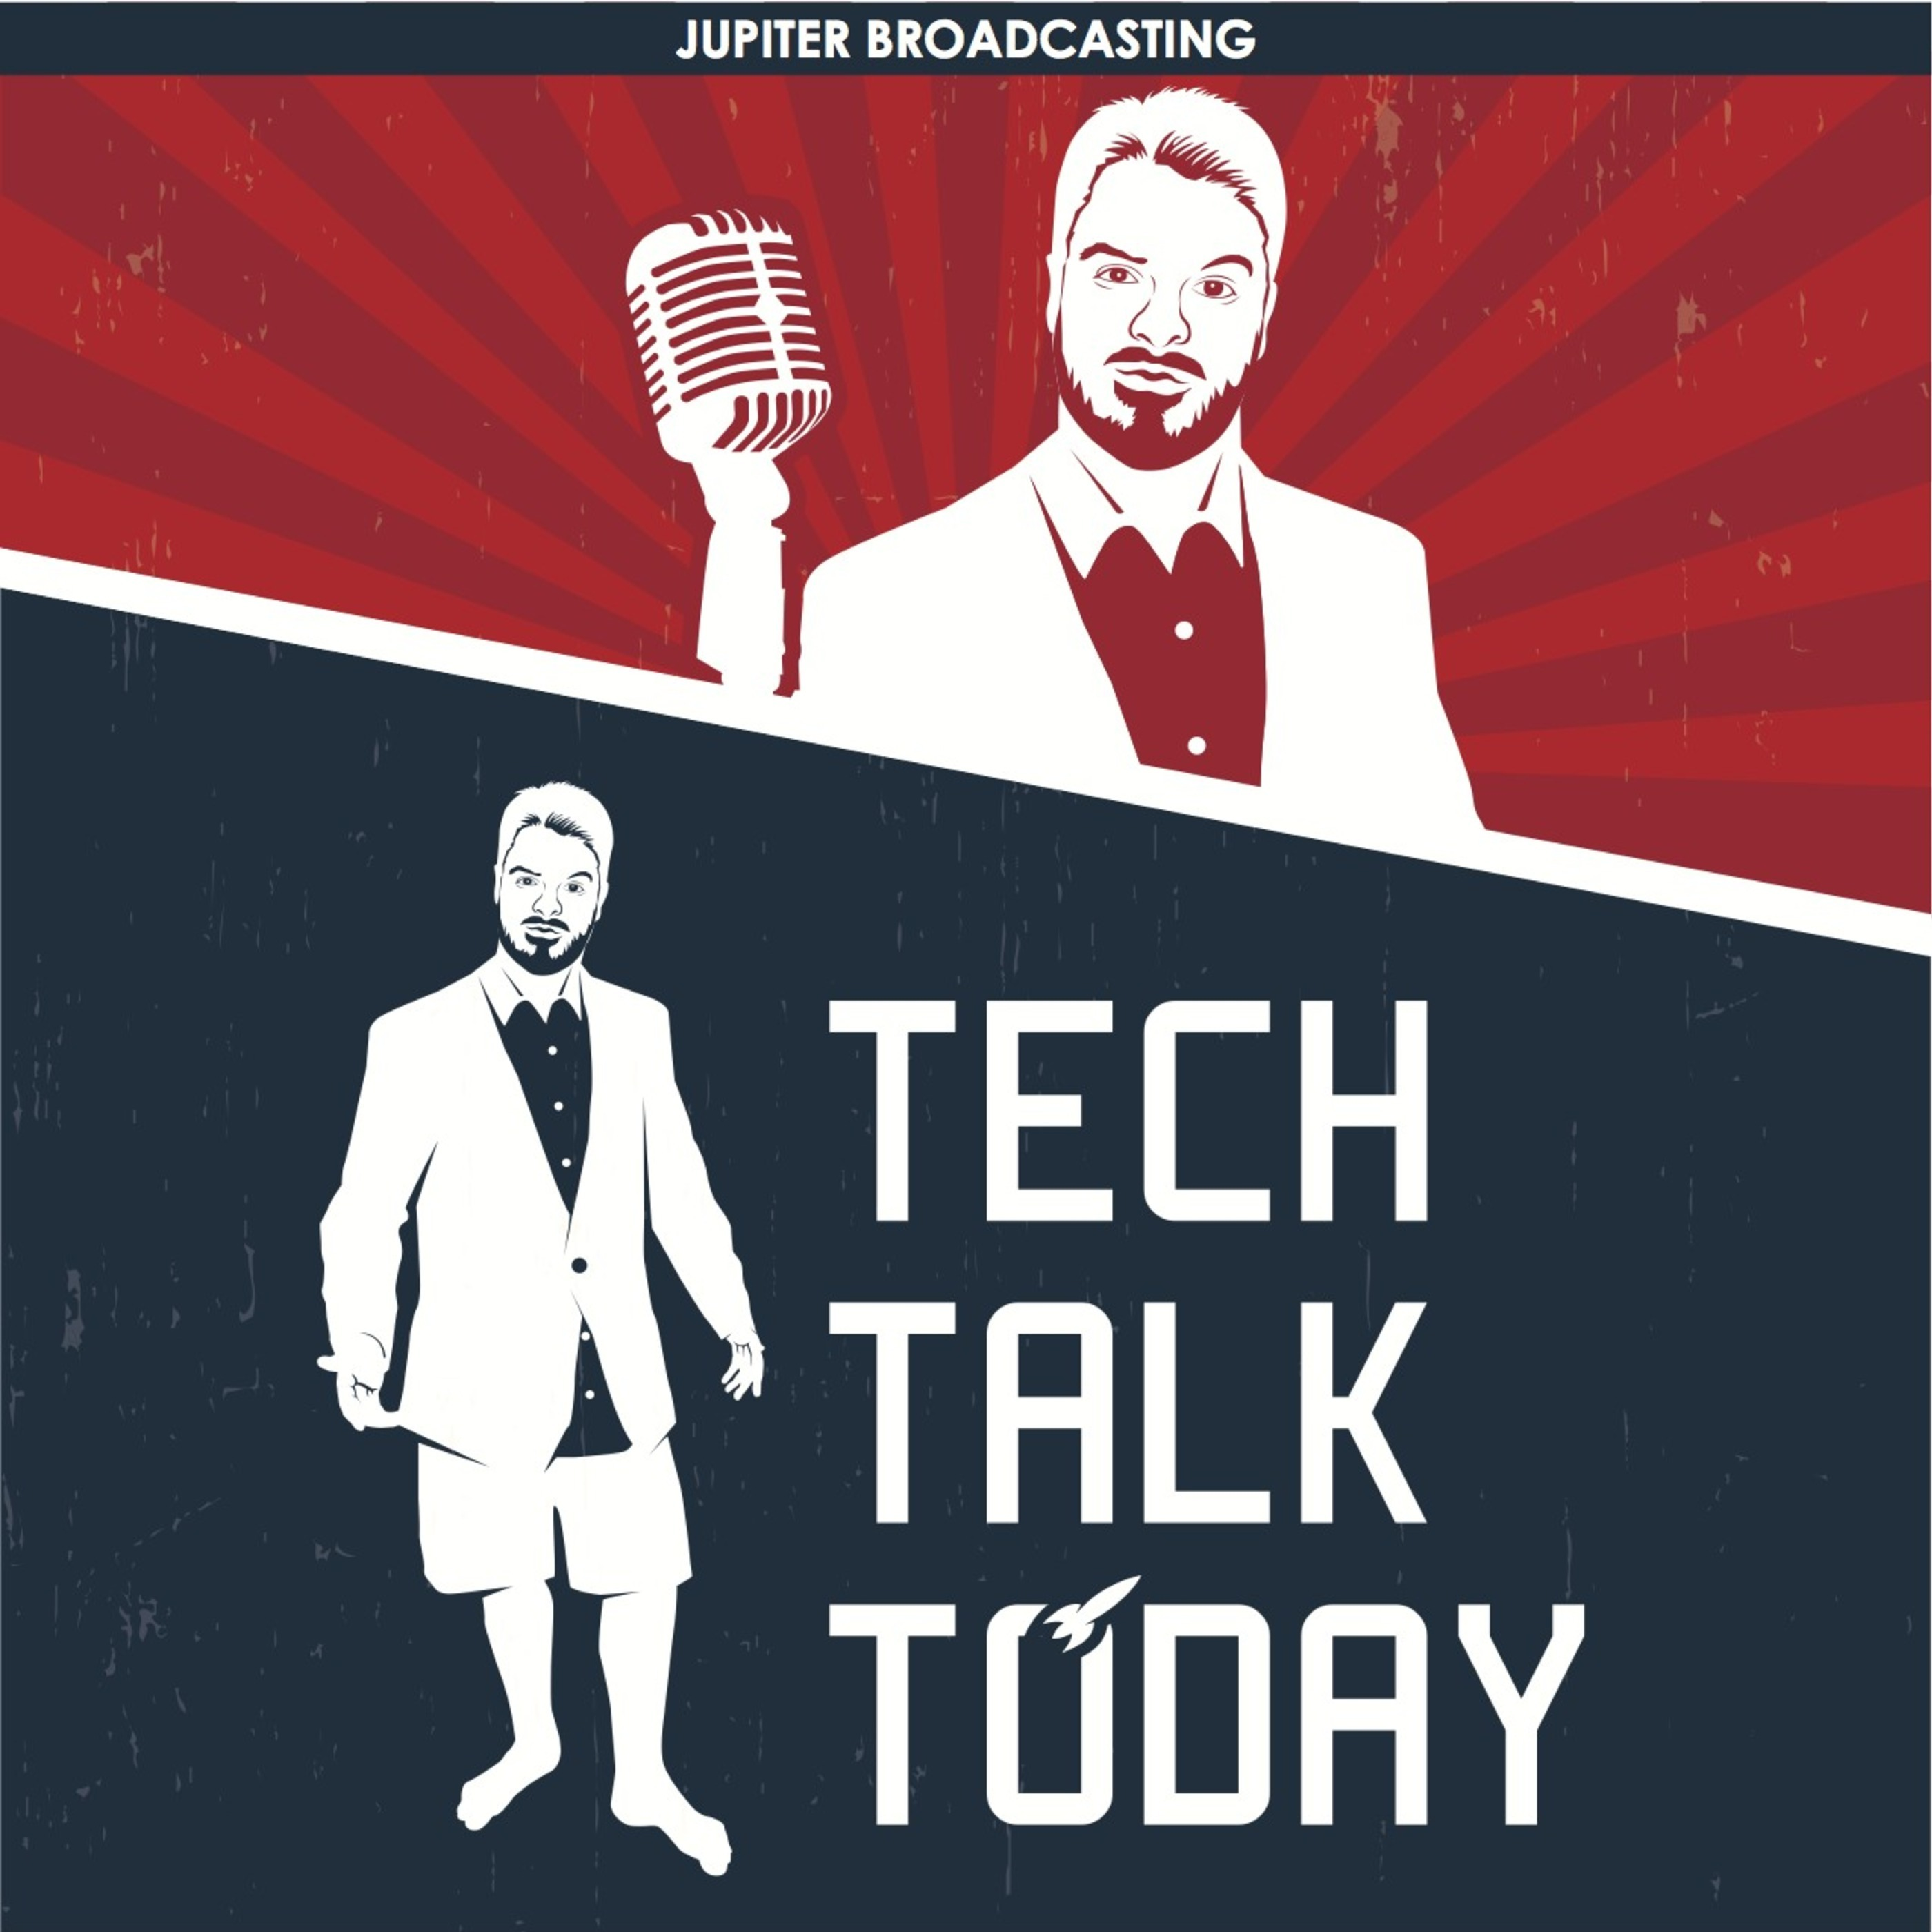 Episode 5: Microsoft Bumps, Bruises & Bribes | Tech Talk Today 158